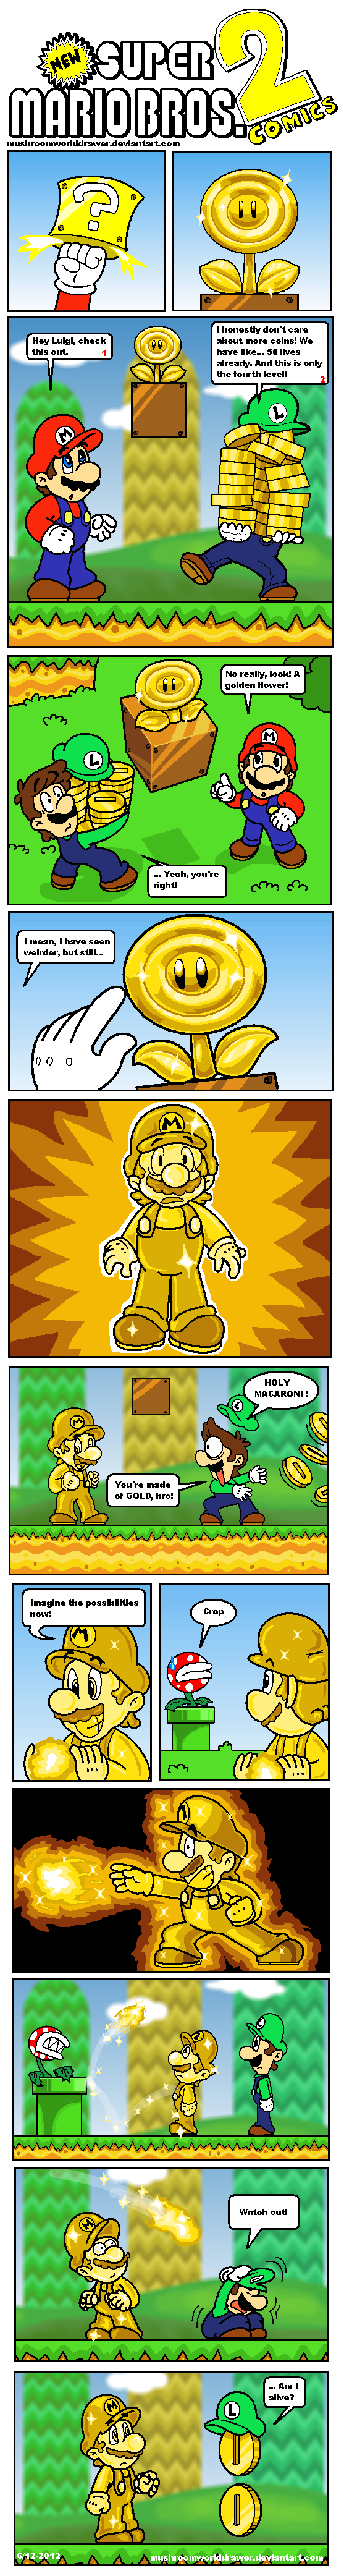 NSMB 2 Comics: The Golden Flower by MushroomWorldDrawer